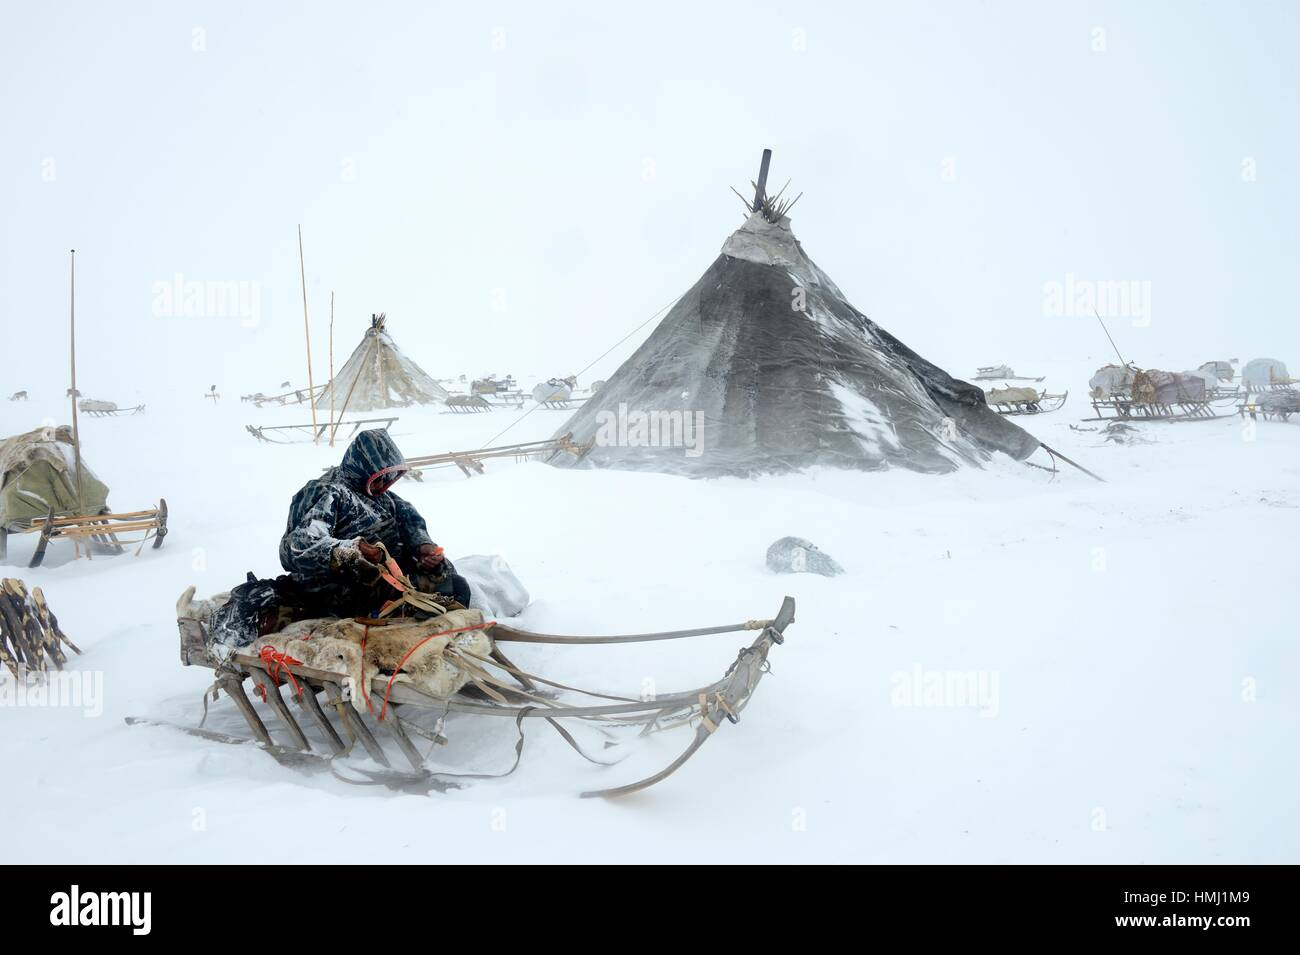 Nenets herder warmly dressed and fixing his sled at camp in the storm / blizzard, Yar-Sale district, Yamal, Northwest - Stock Image